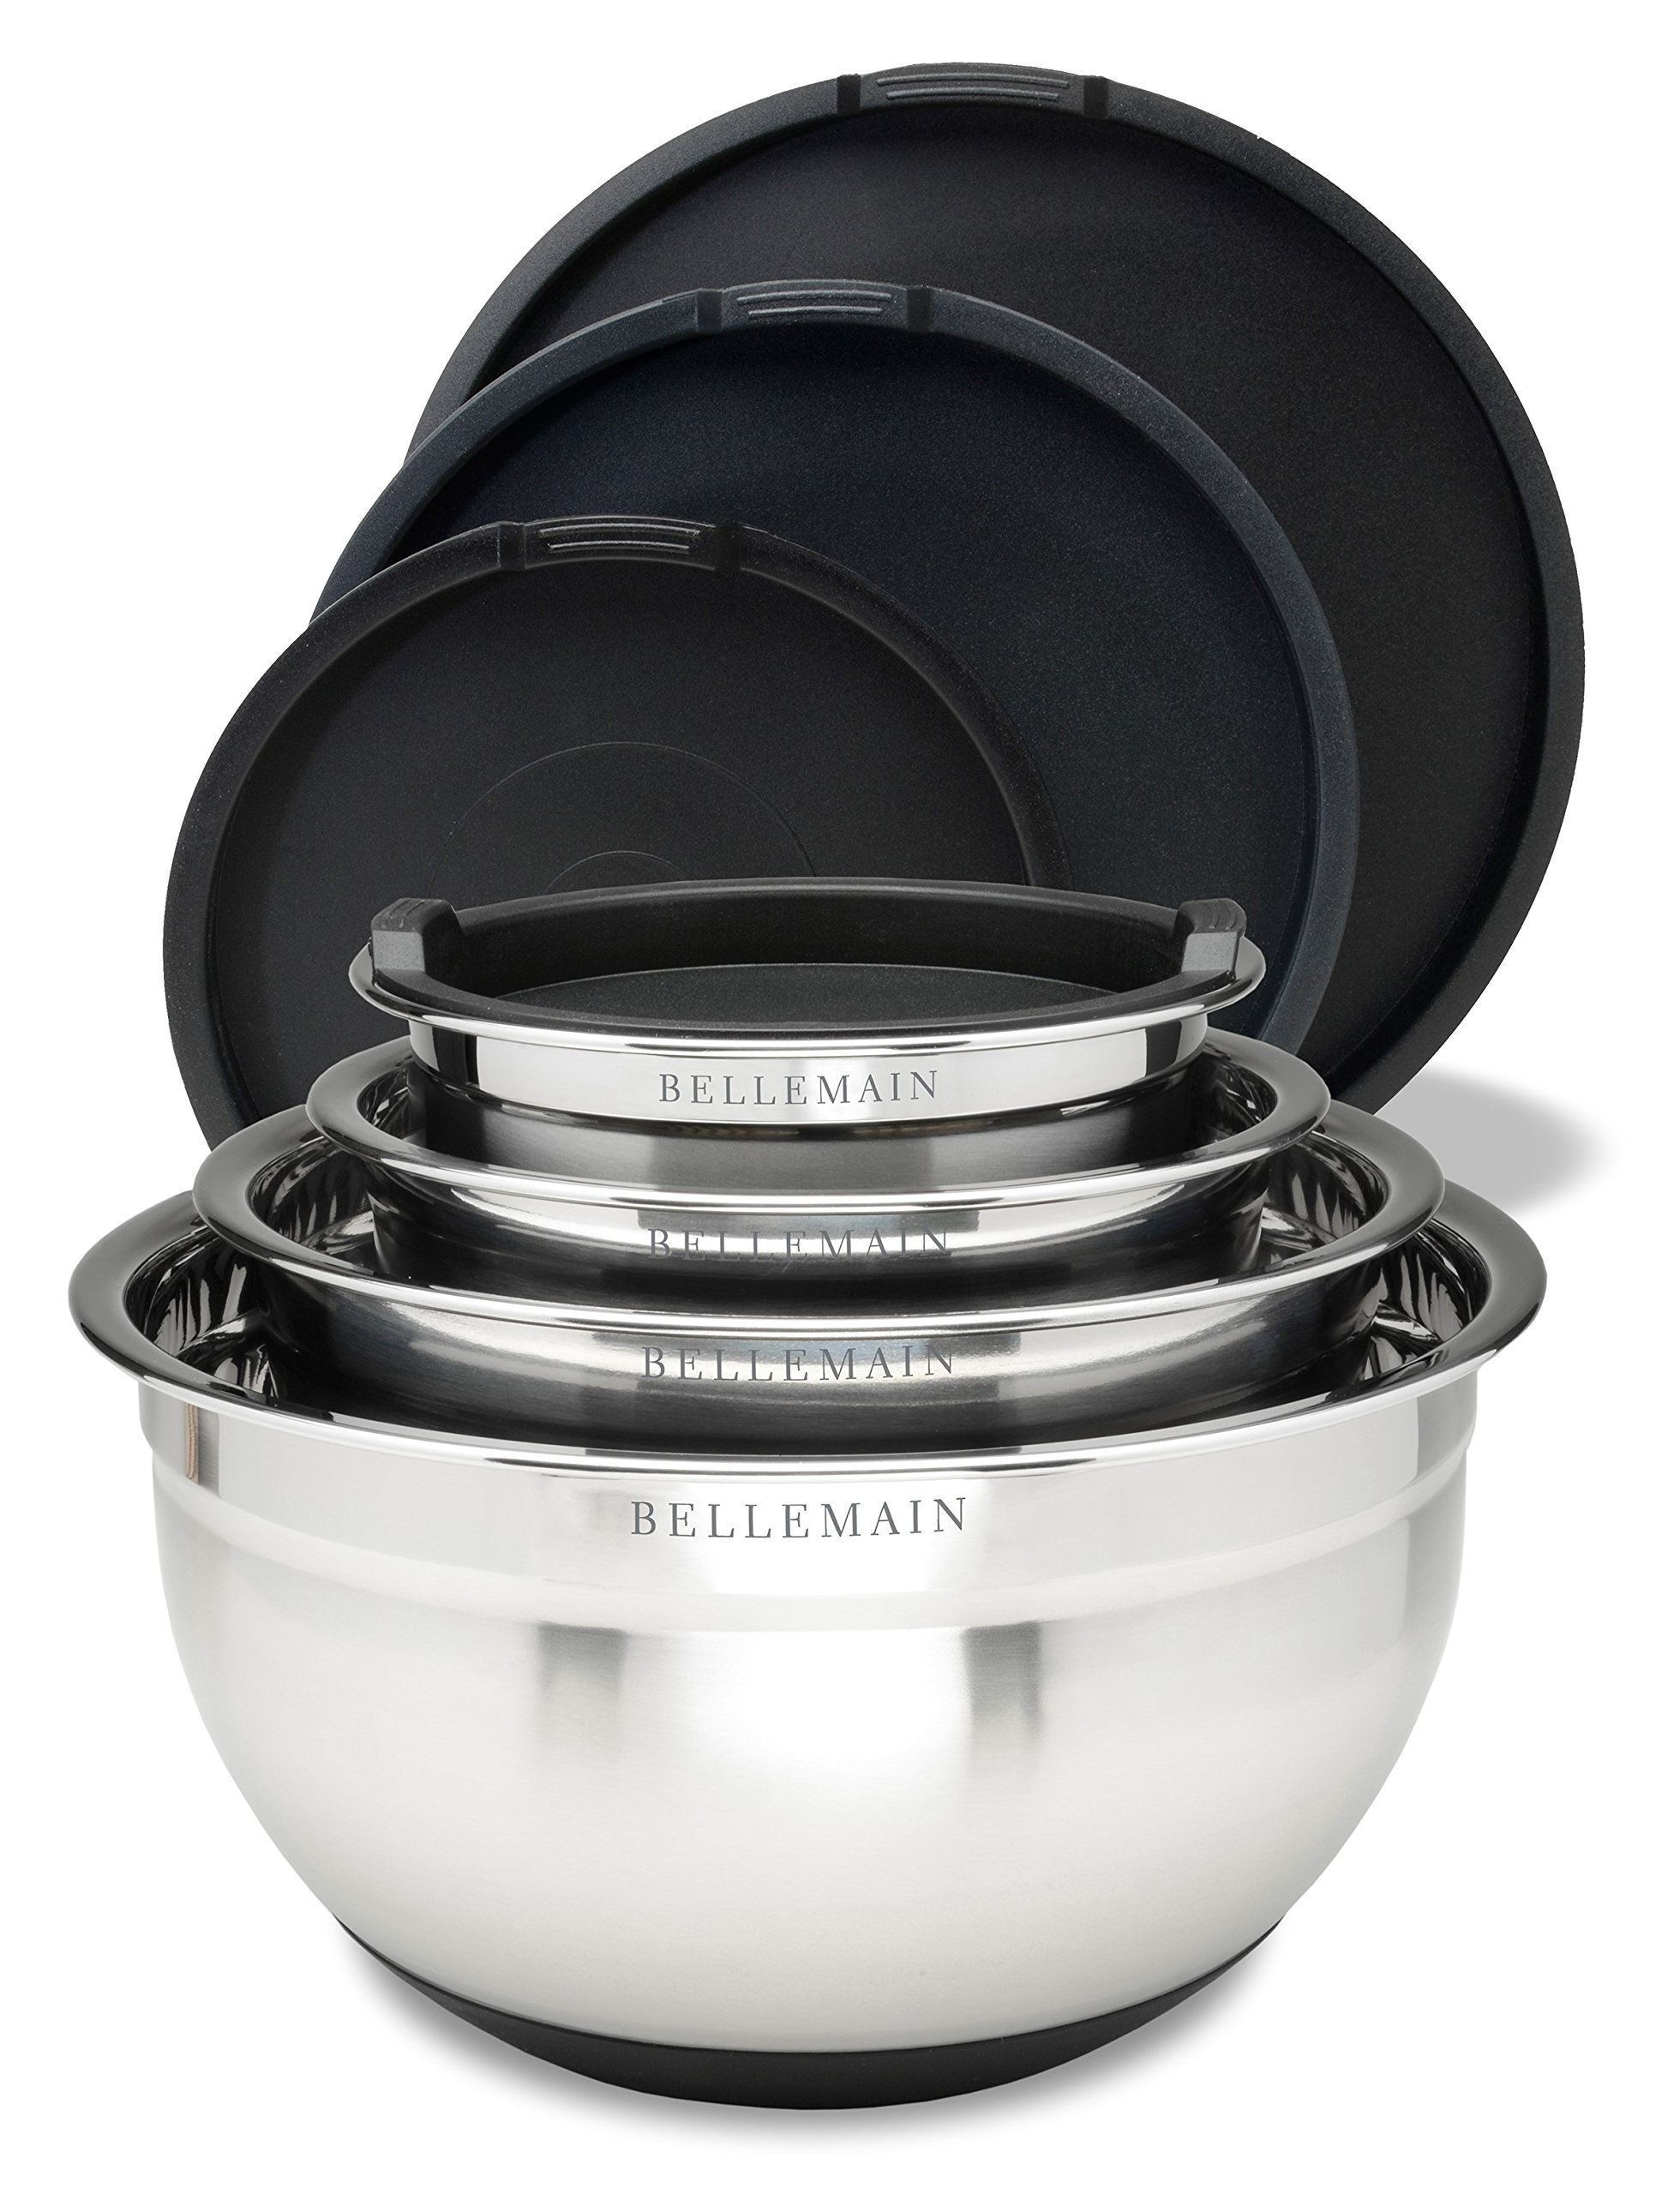 Top Rated Bellemain Stainless Steel Non-Slip Mixing Bowls with Lids, 4 Piece Set Includes 1 Qt, 1.5 Qt, 3 Qt. & 5 Qt. by Bellemain (Image #2)